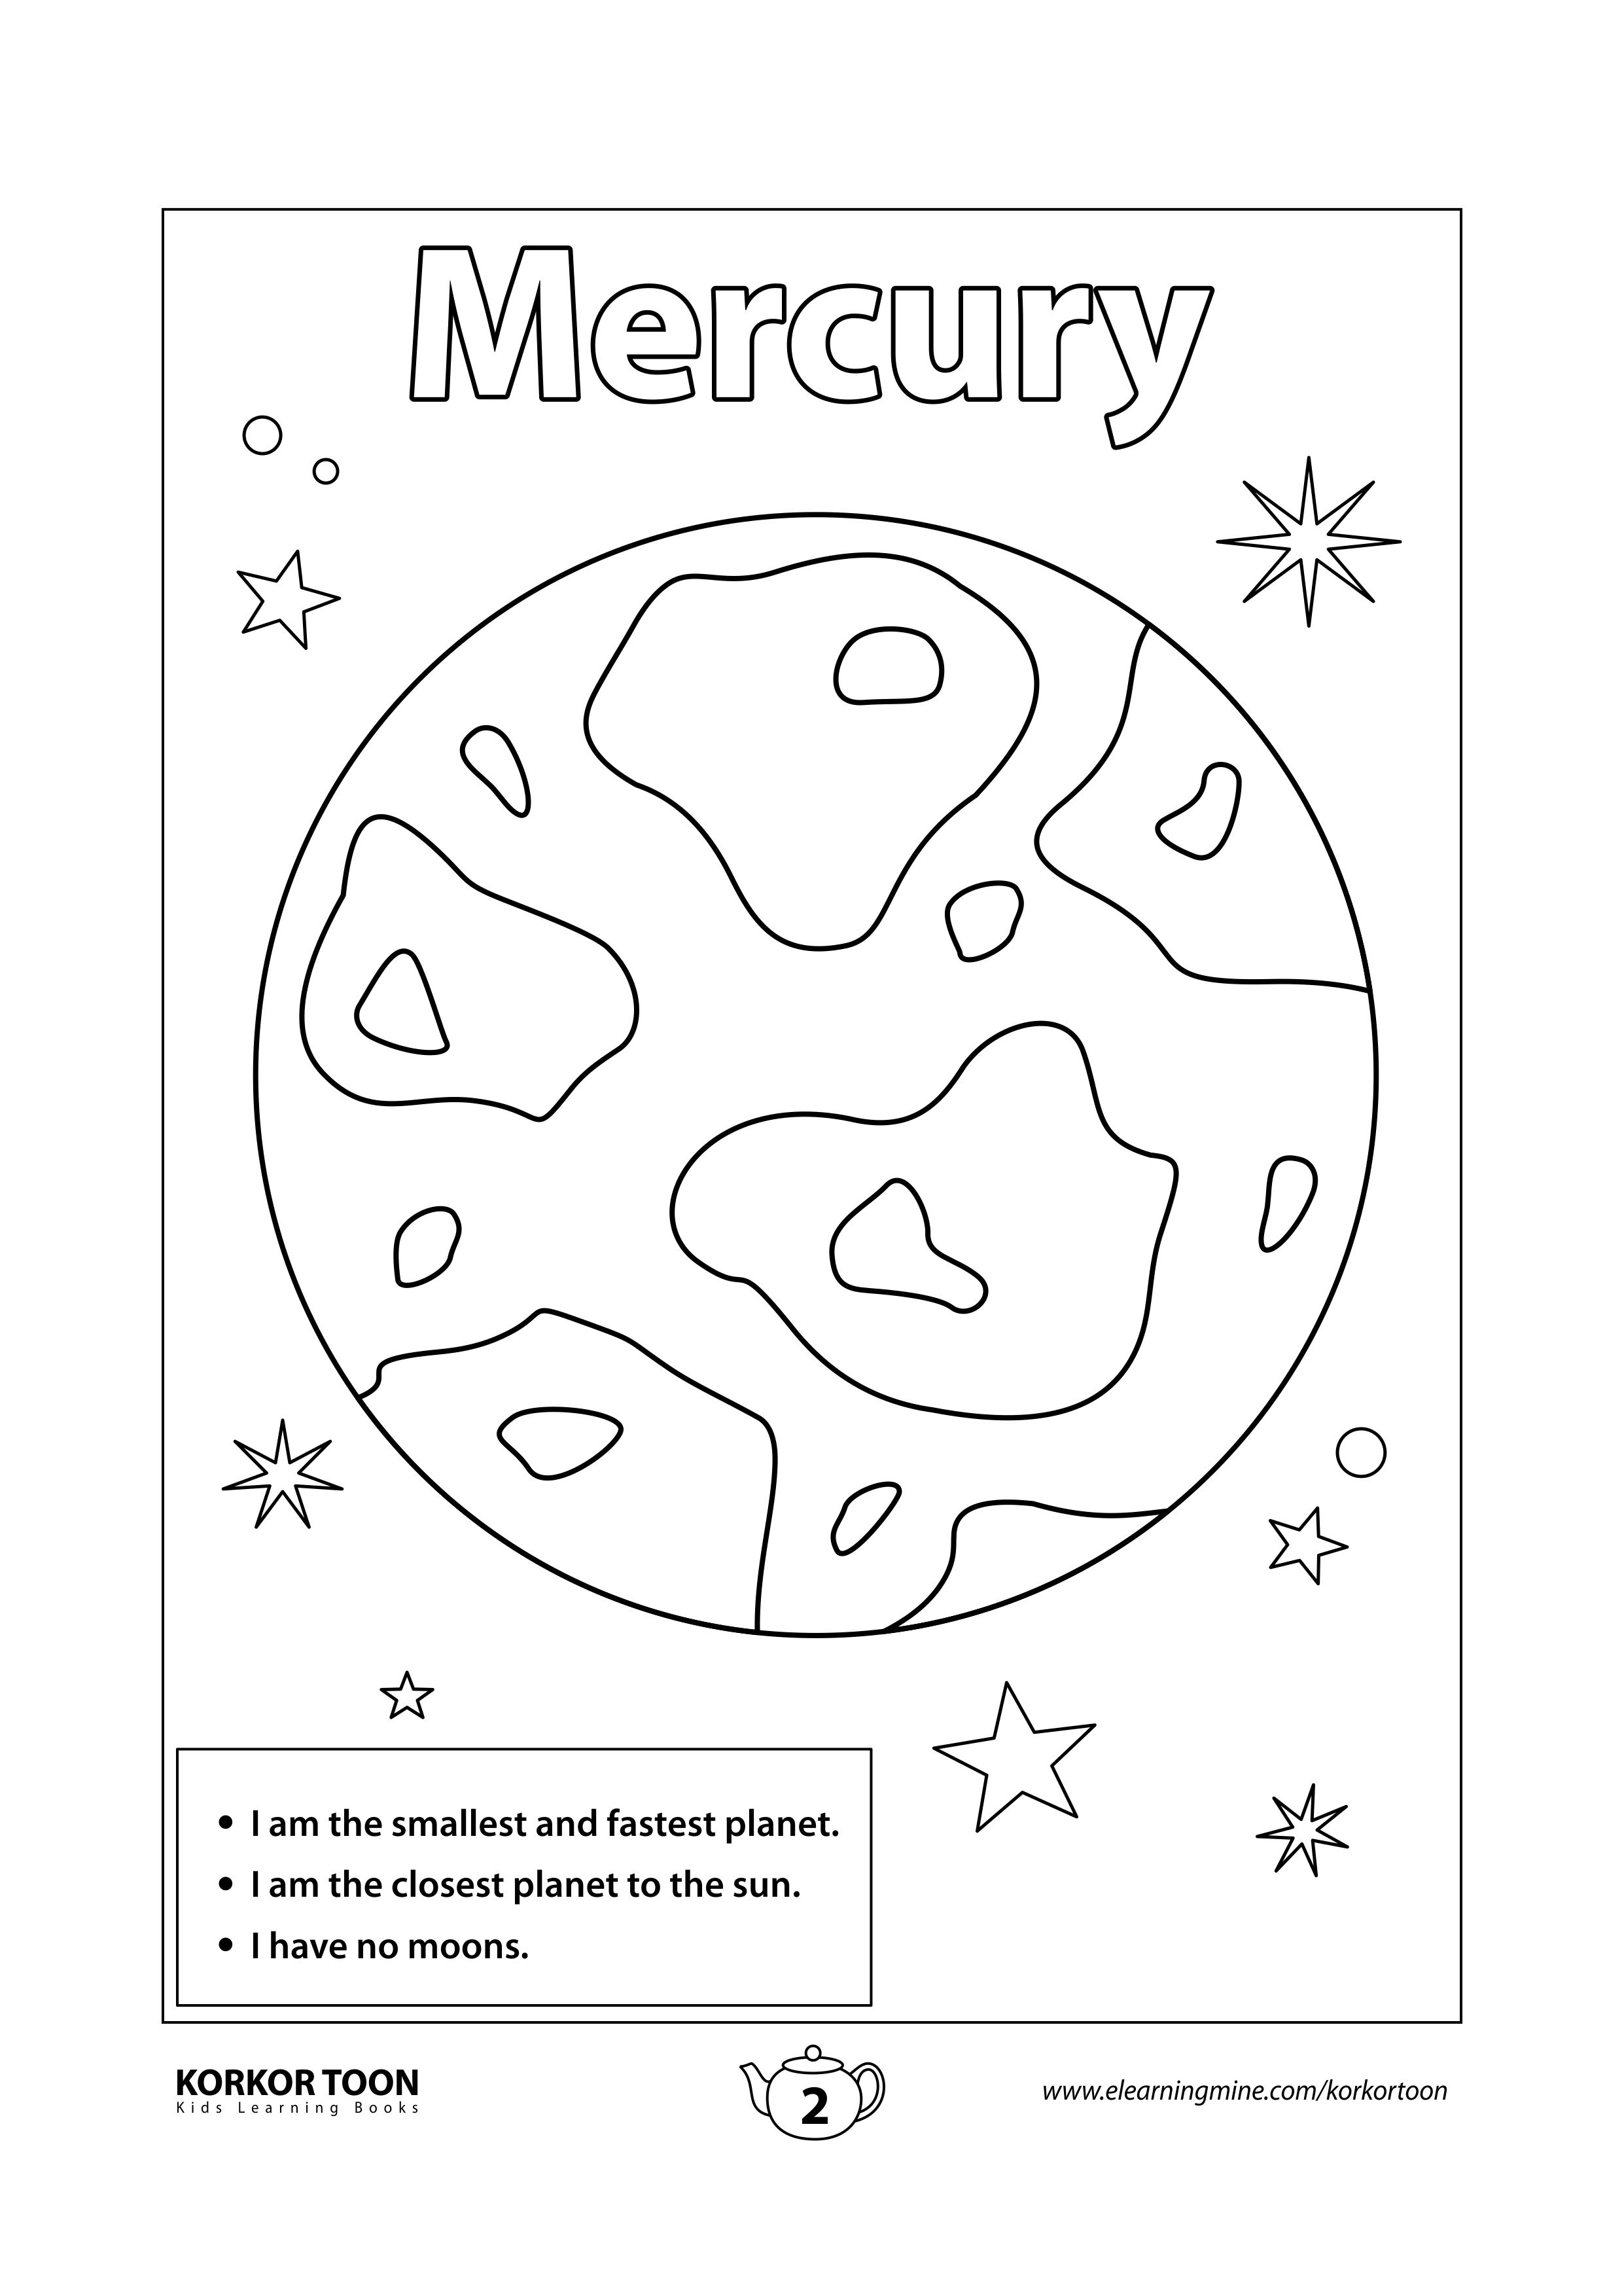 Free Printable High Quality Coloring Pages For Kids